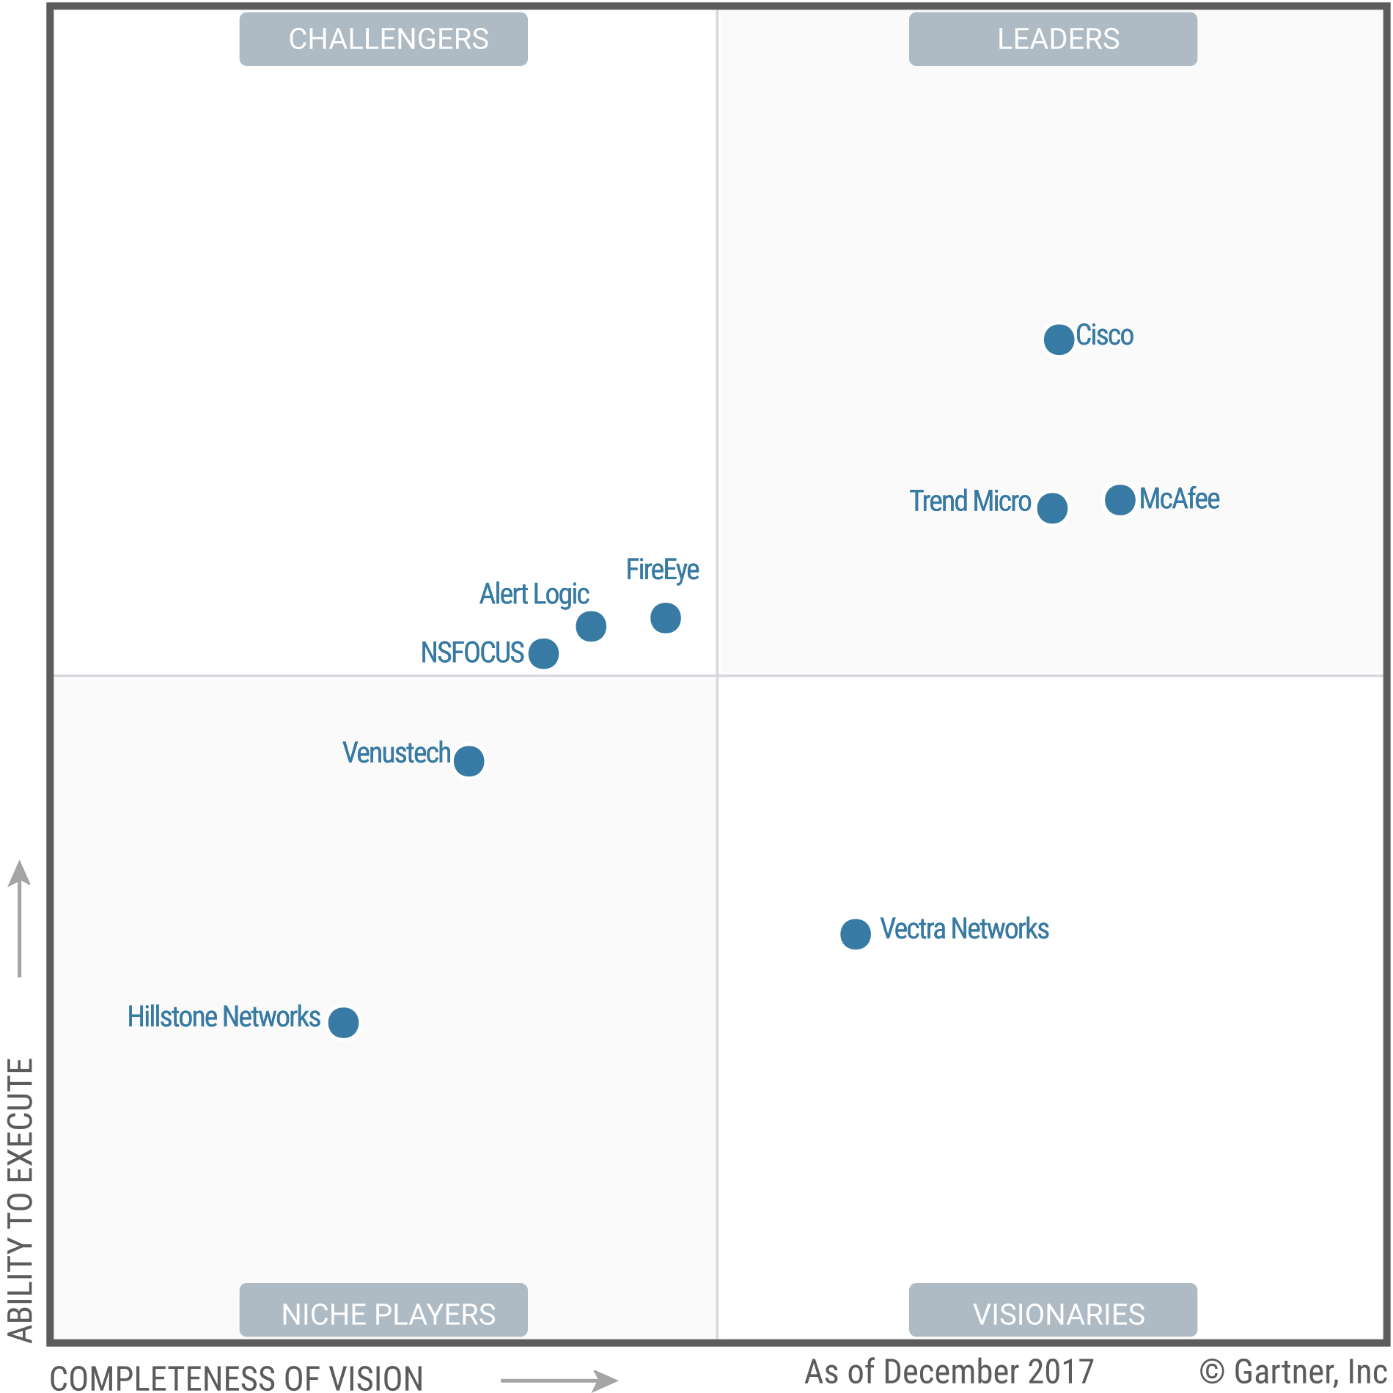 Magic Quadrant for Intrusion Detection and Prevention Systems 2018 (G00324914)